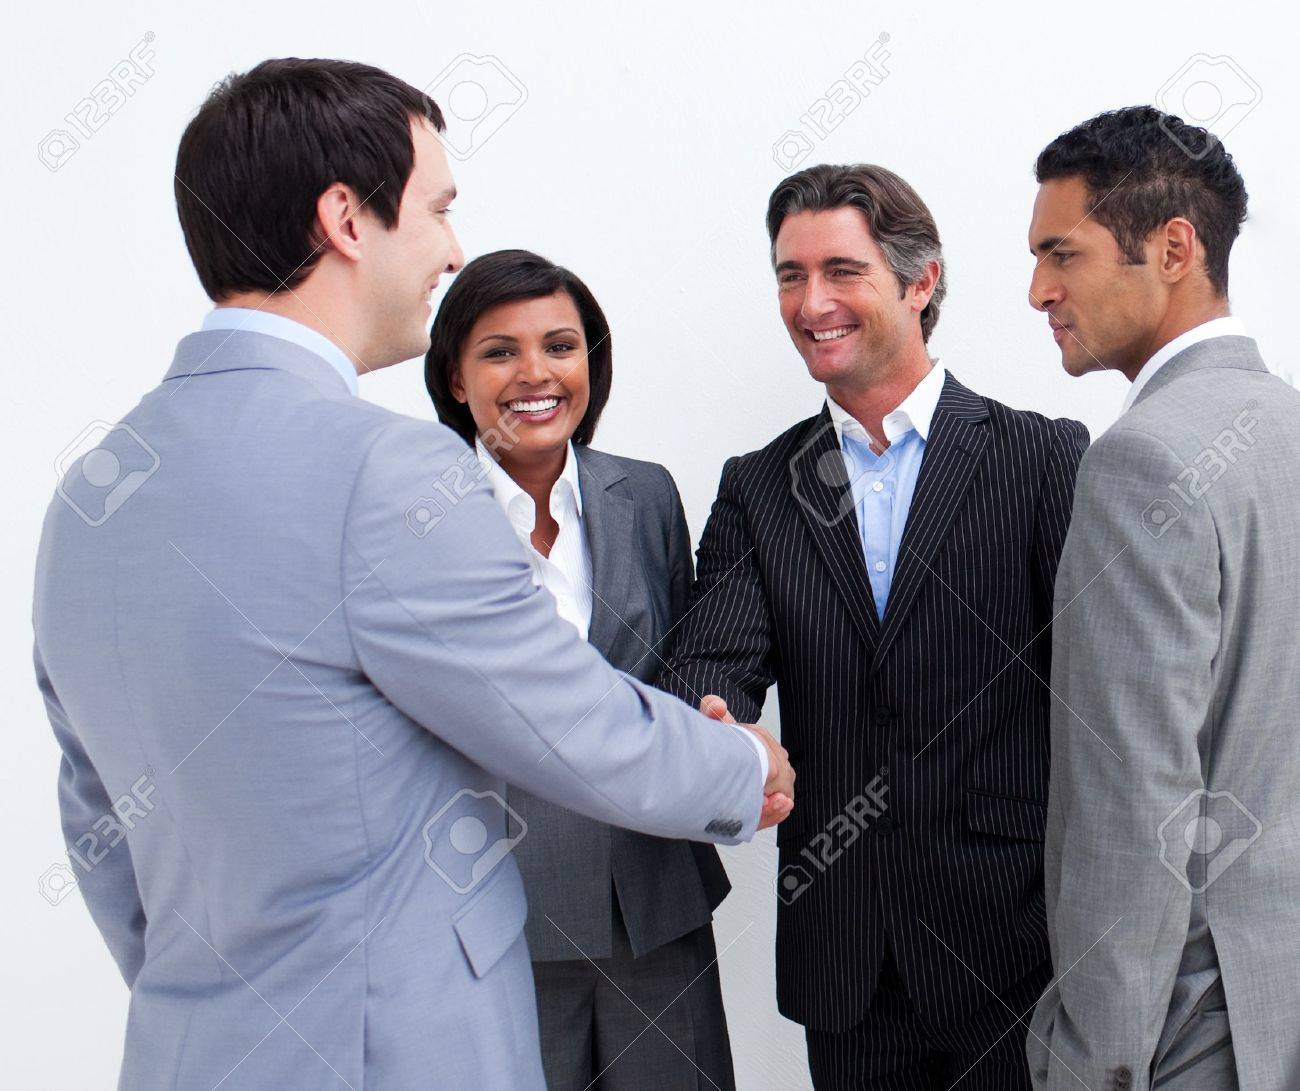 Business people handshake greeting deal at work photo free download - Business Deal International Business People Closing A Deal